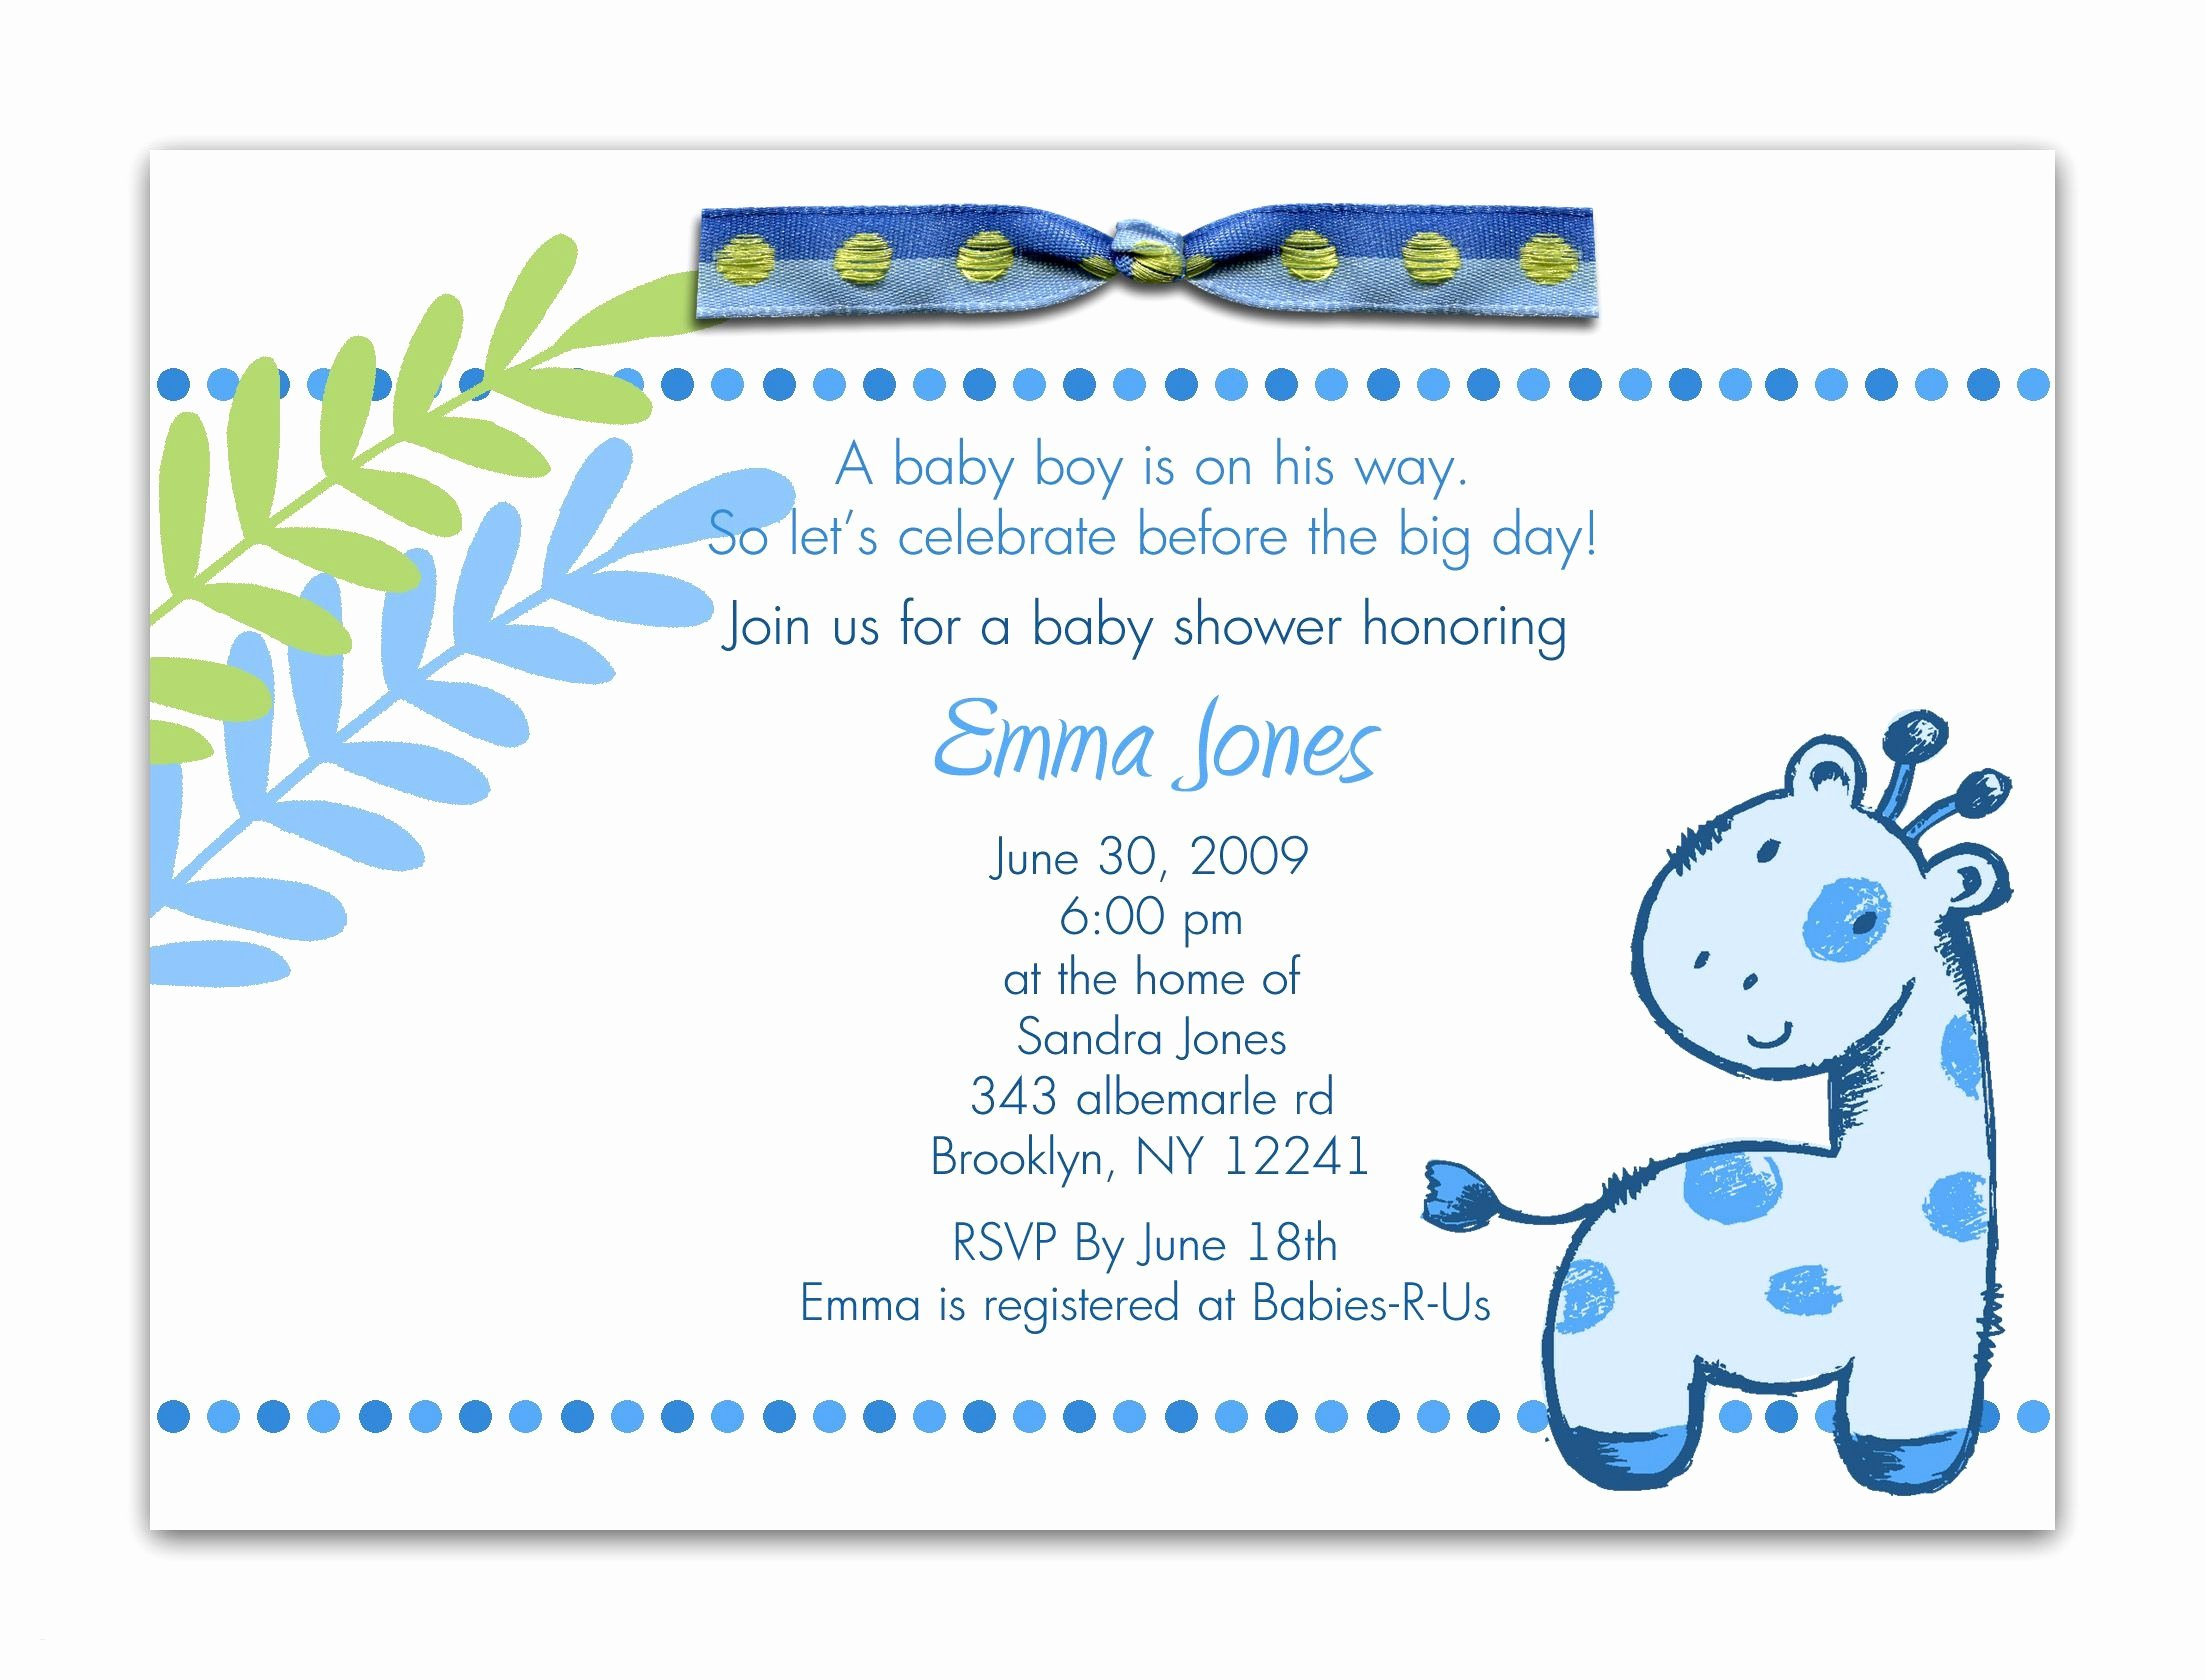 Word Template for Invitations Fresh Baby Shower Invitations Templates for Word Free Creative